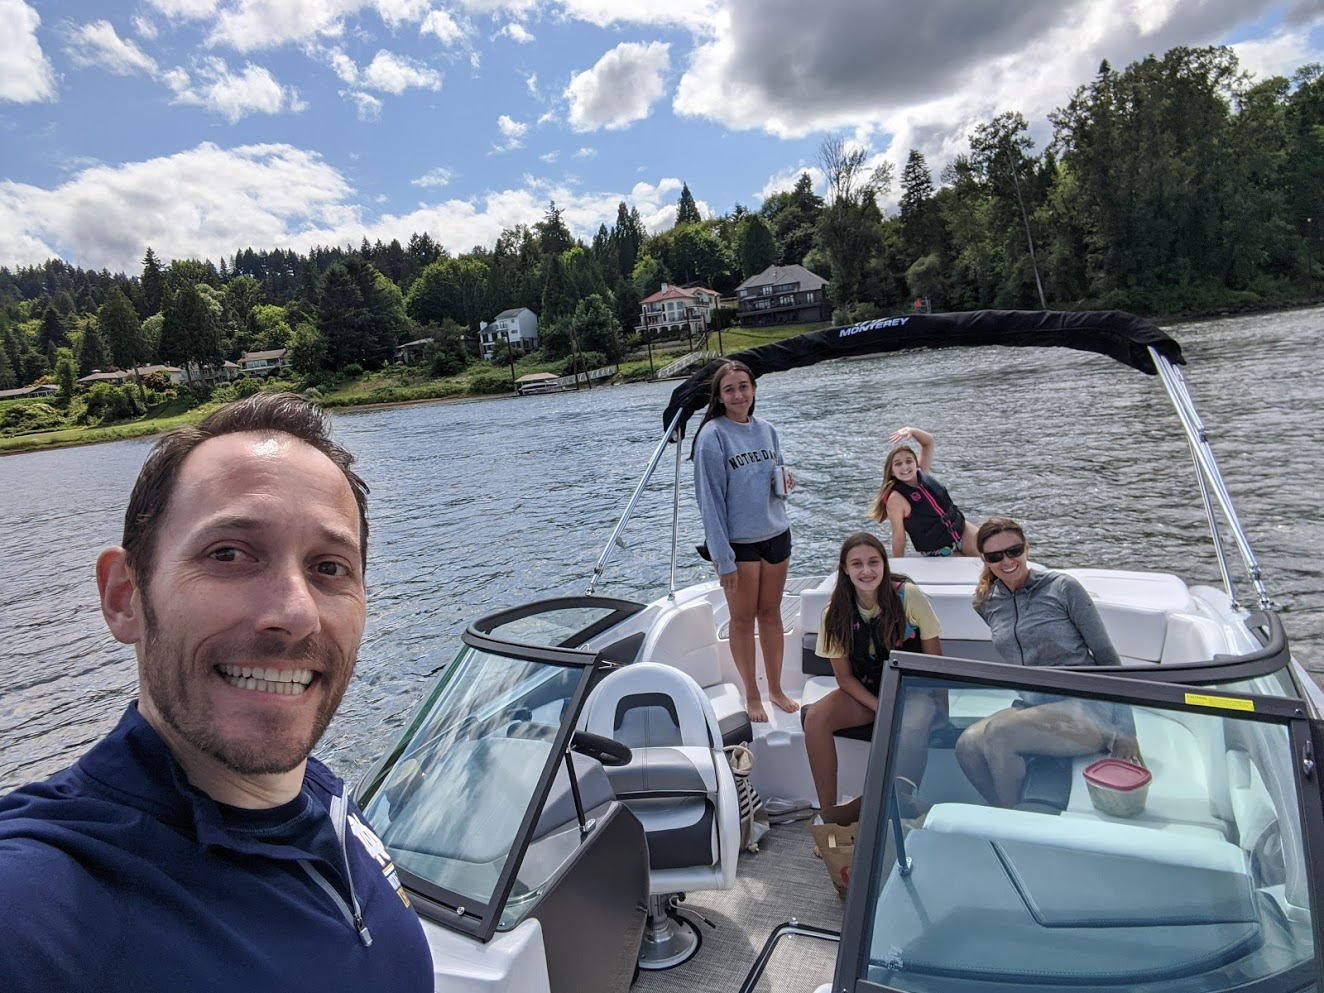 Dominick Corso and his family enjoying a day on the boat. Dominick has VEDS and shared his story of a successful emergency outcome with The VEDS Movement